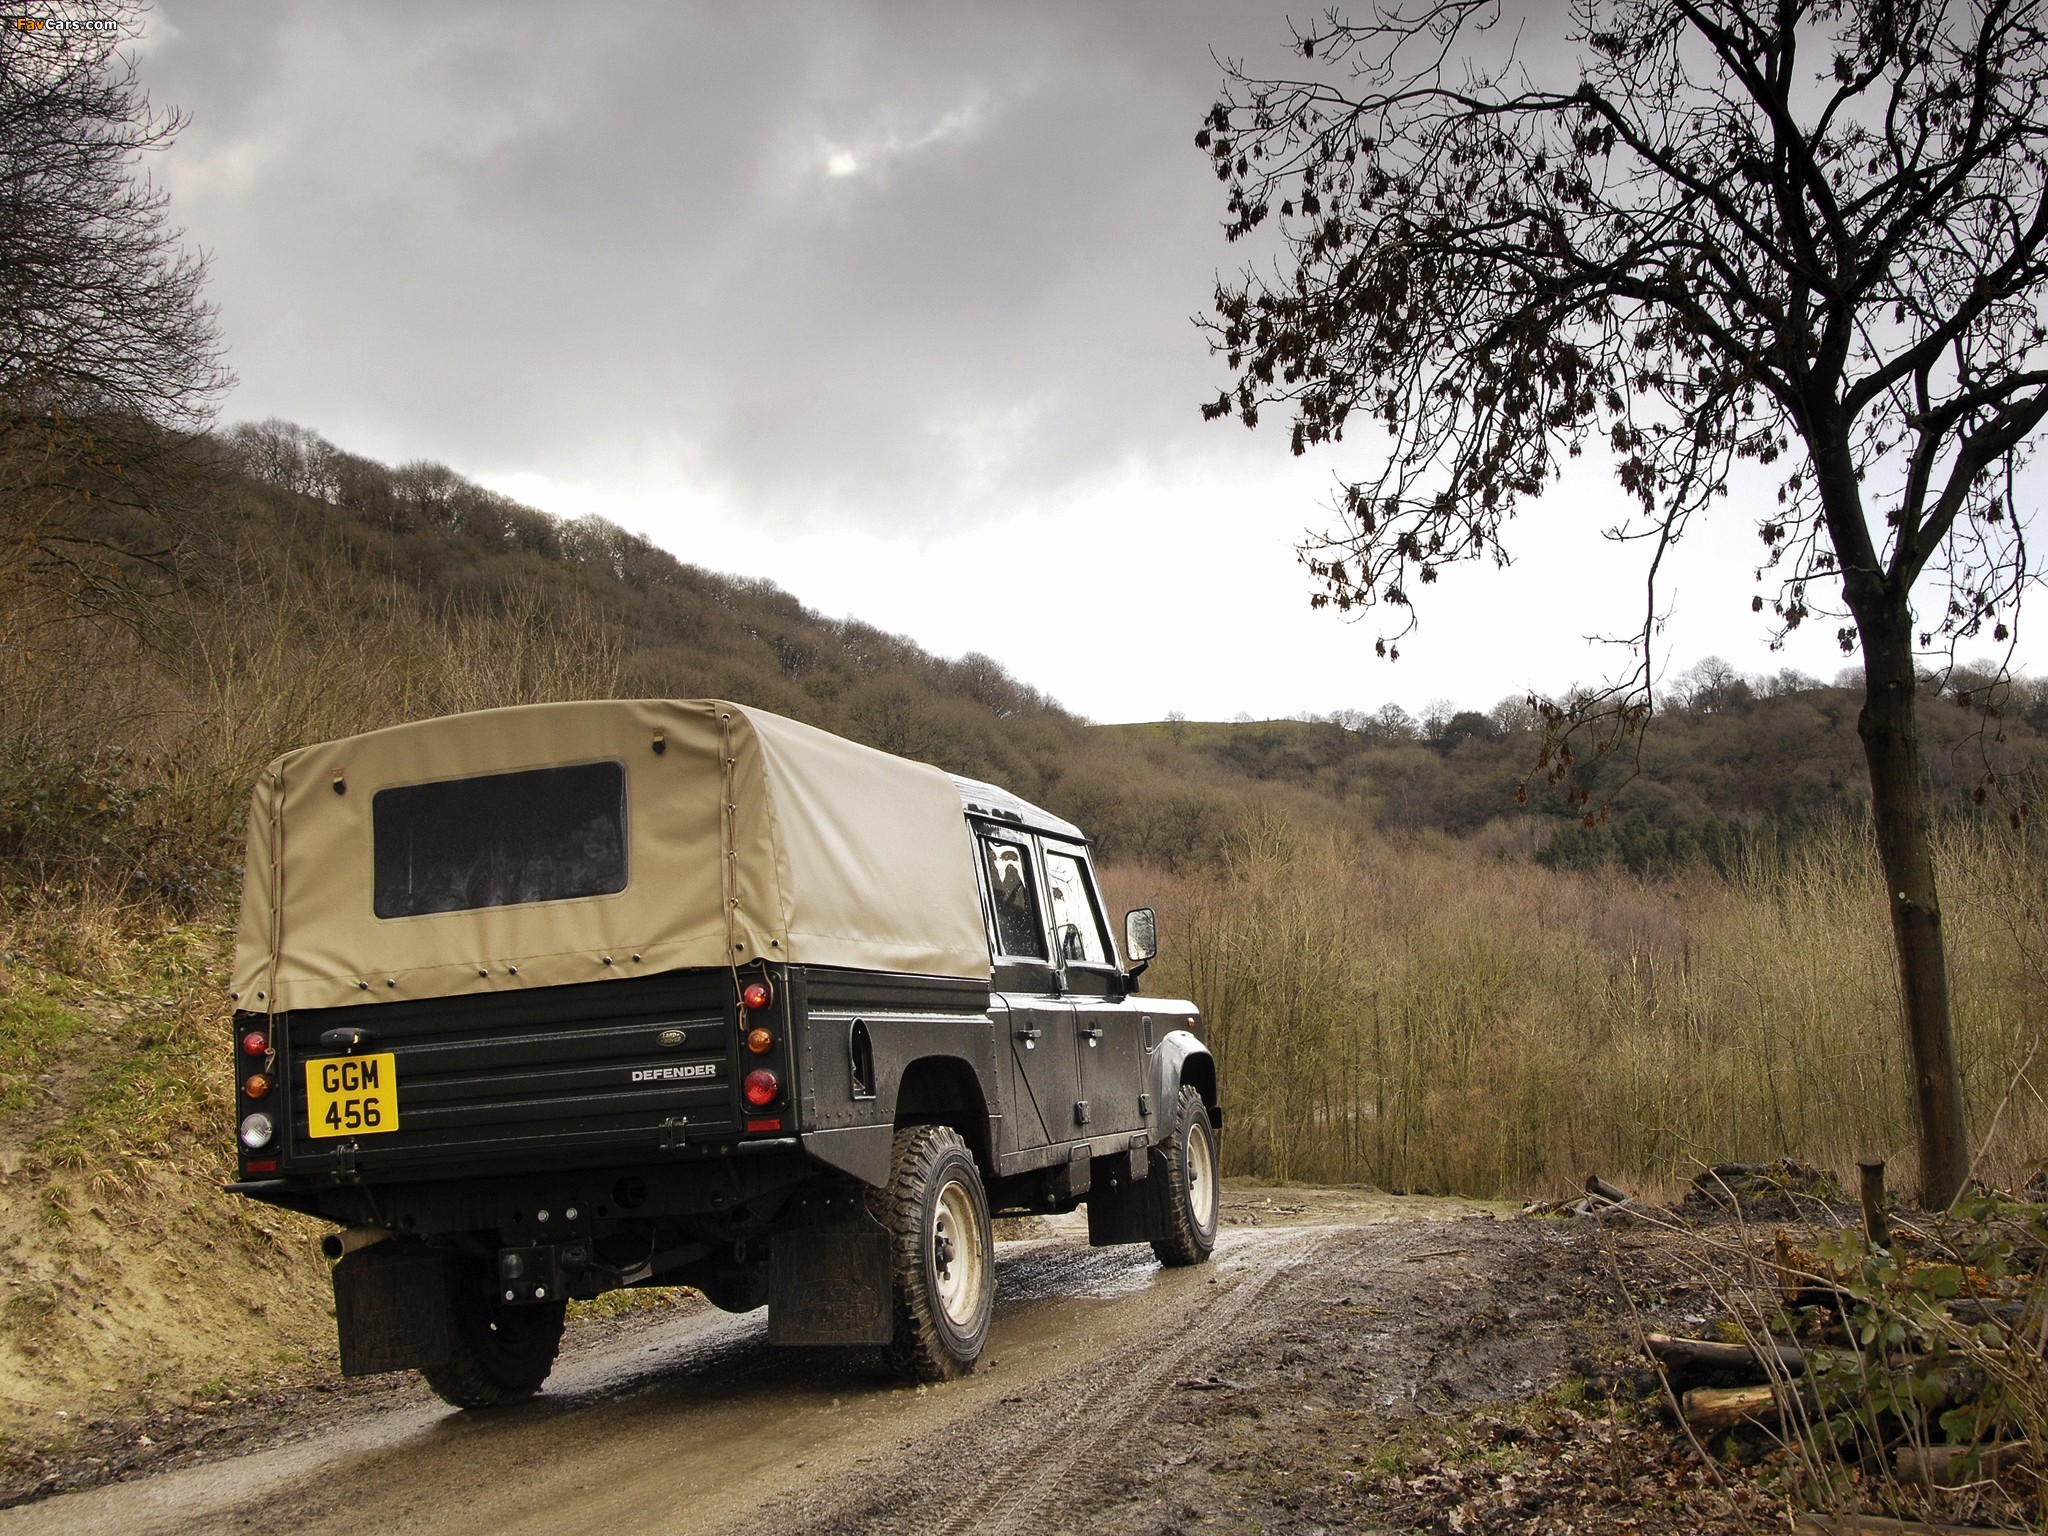 All Car Wallpapers Hd Land Rover Defender 130 Double Cab High Capacity Pickup Uk